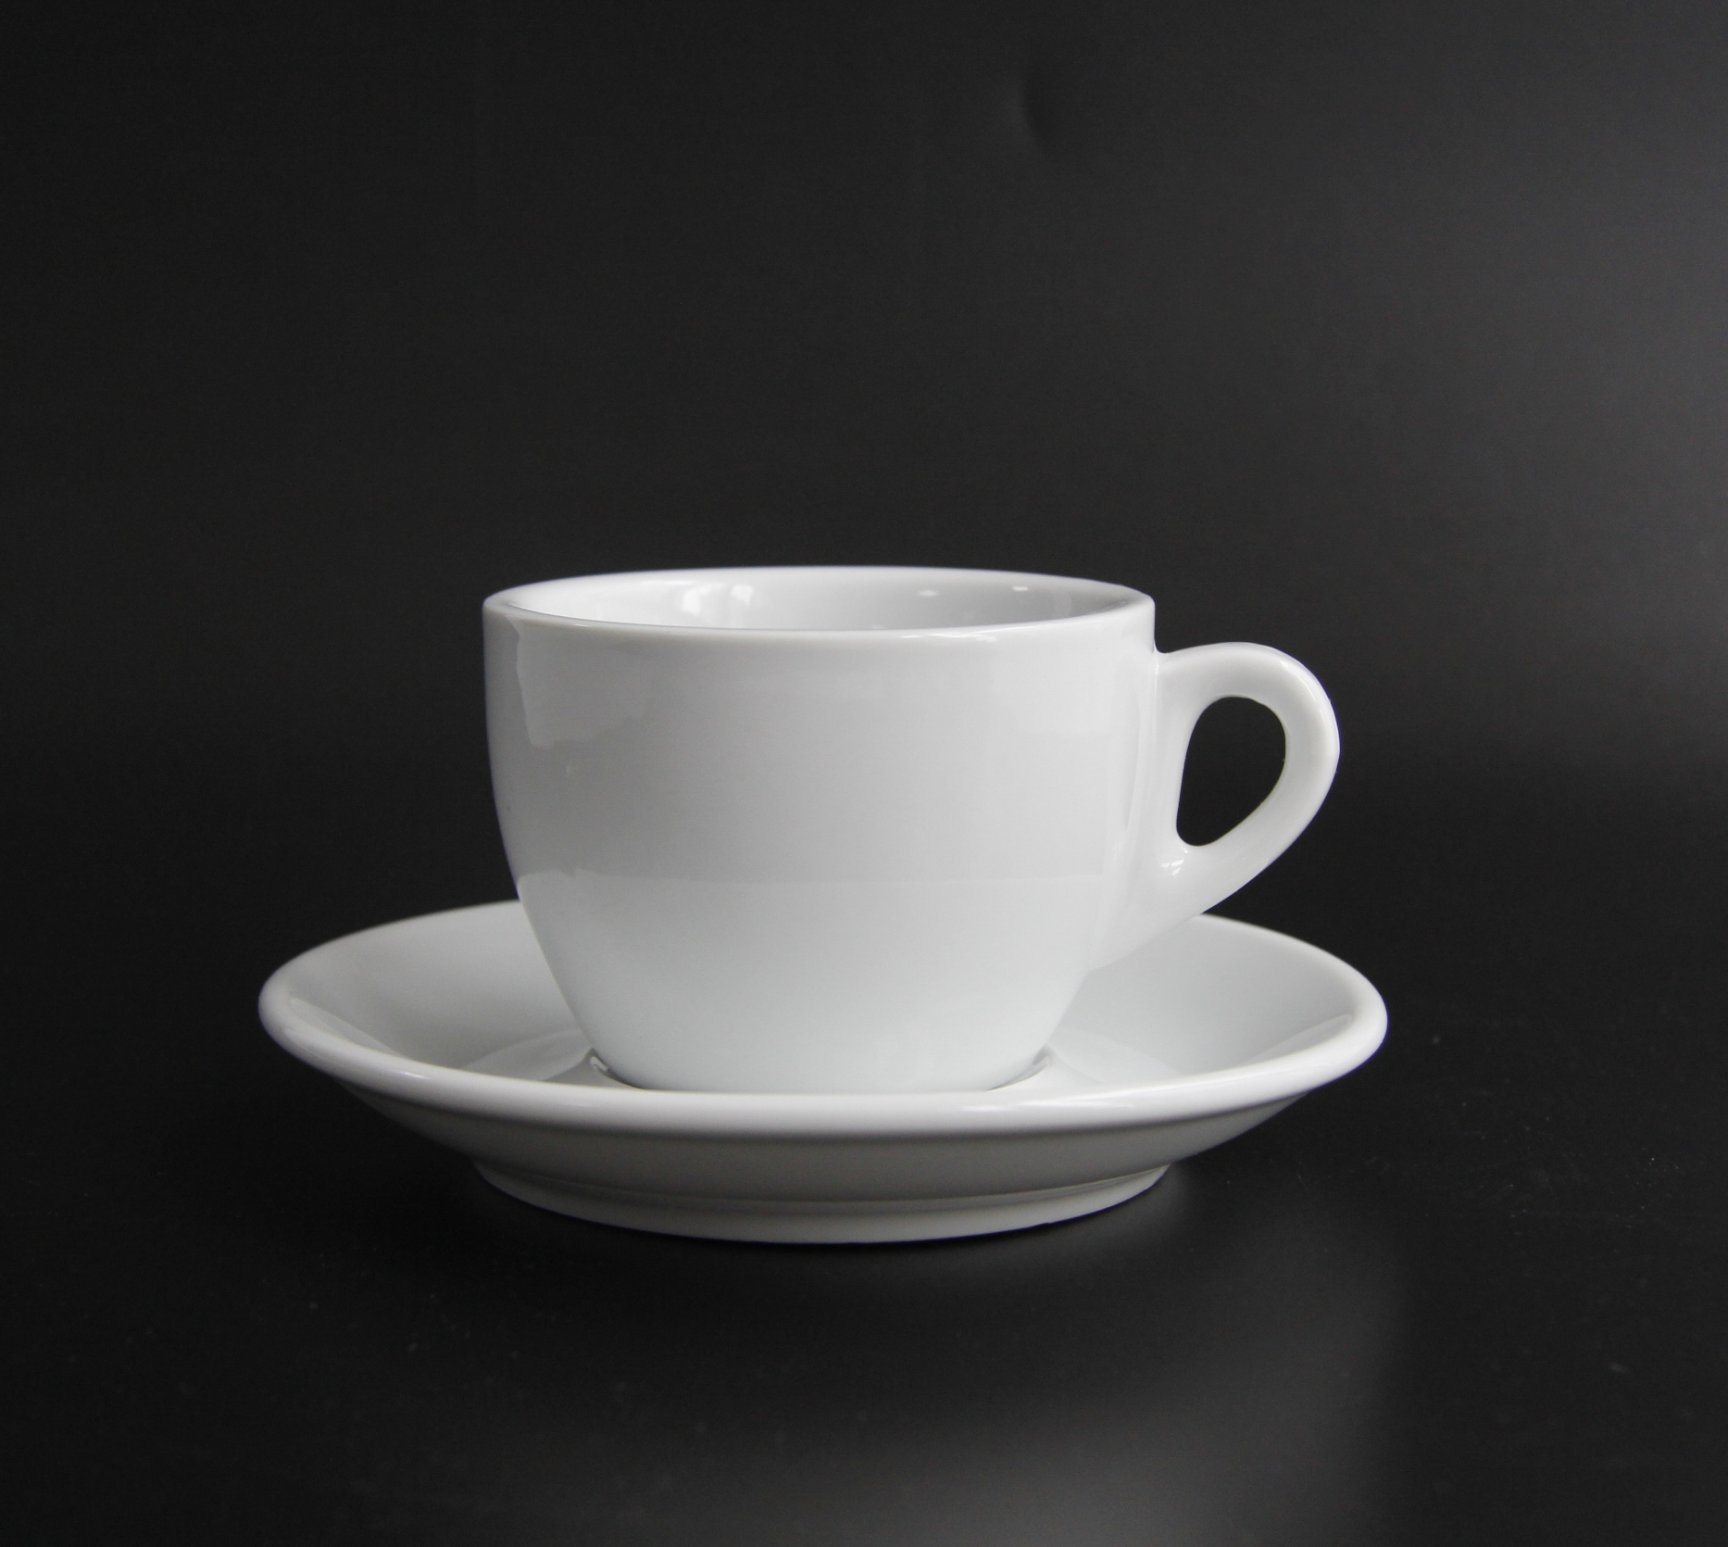 China Porcelain Coffee Cup Porcelain Coffee Cup Wholesale Manufacturers Price Made In China Com